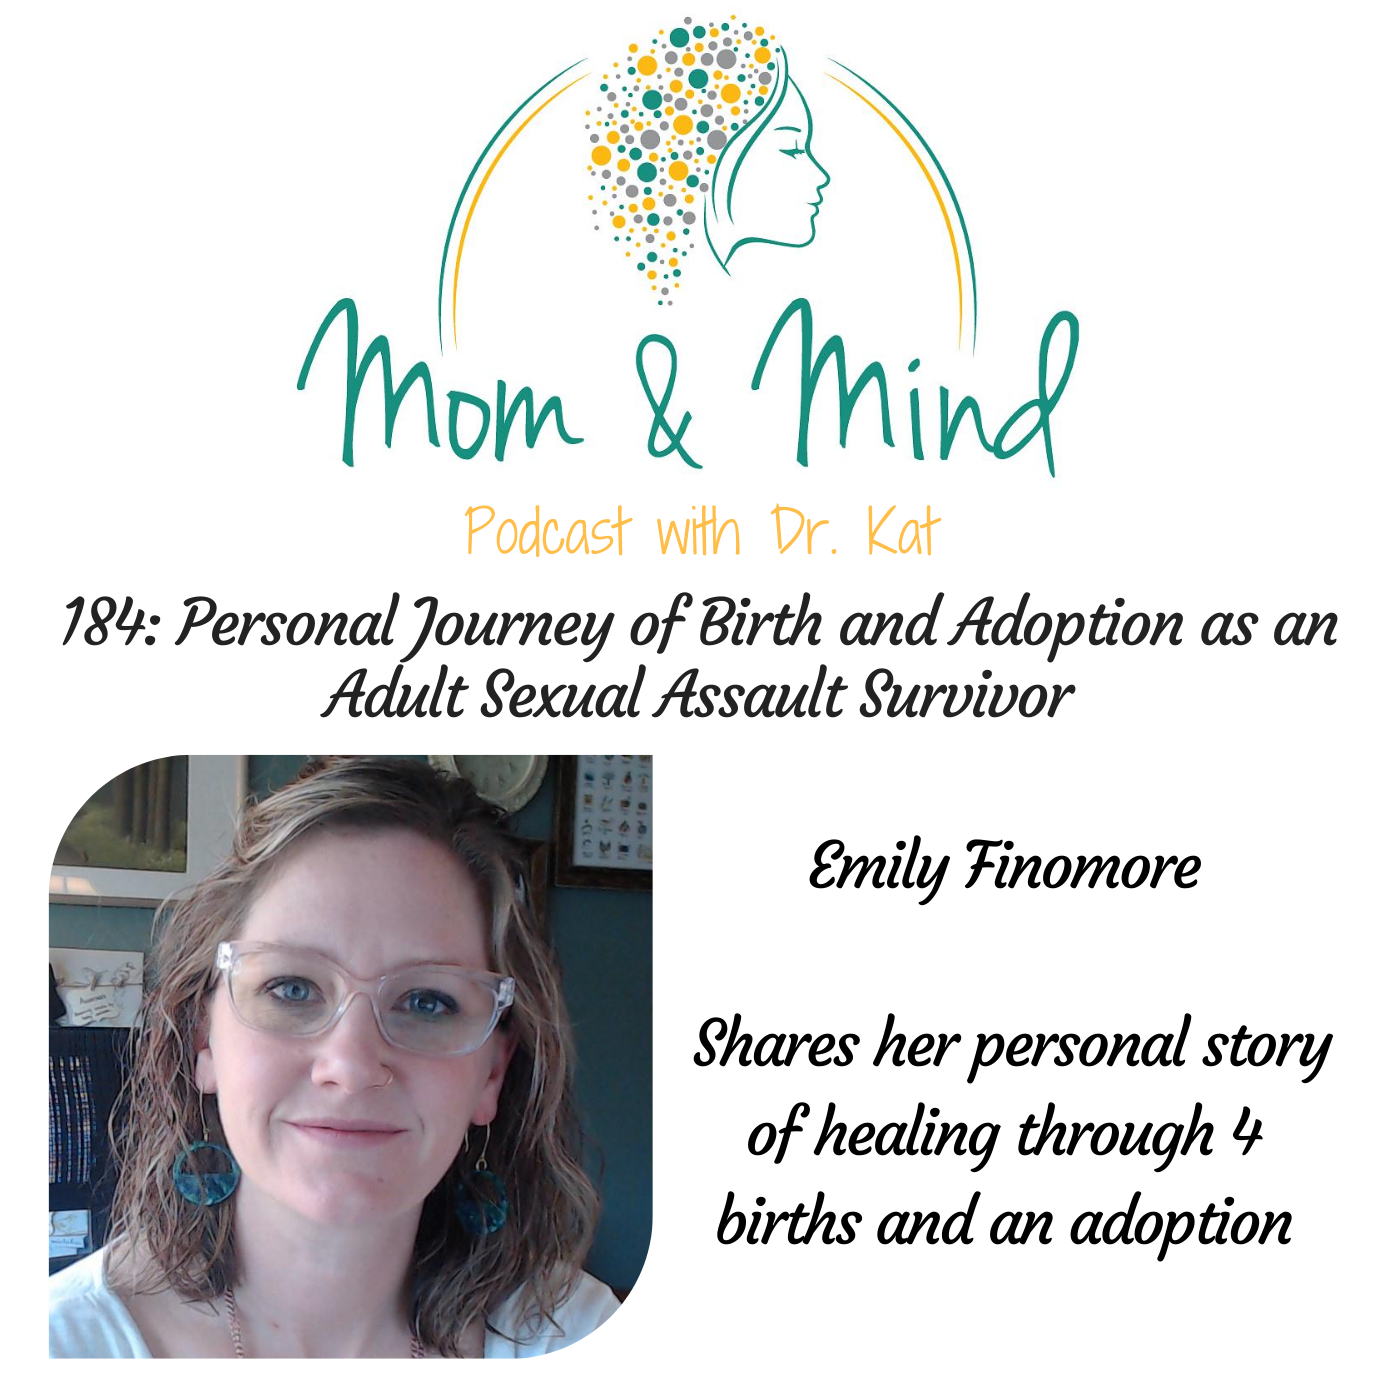 Personal Journey of Birth and Adoption as an Adult Sexual Assault Survivor